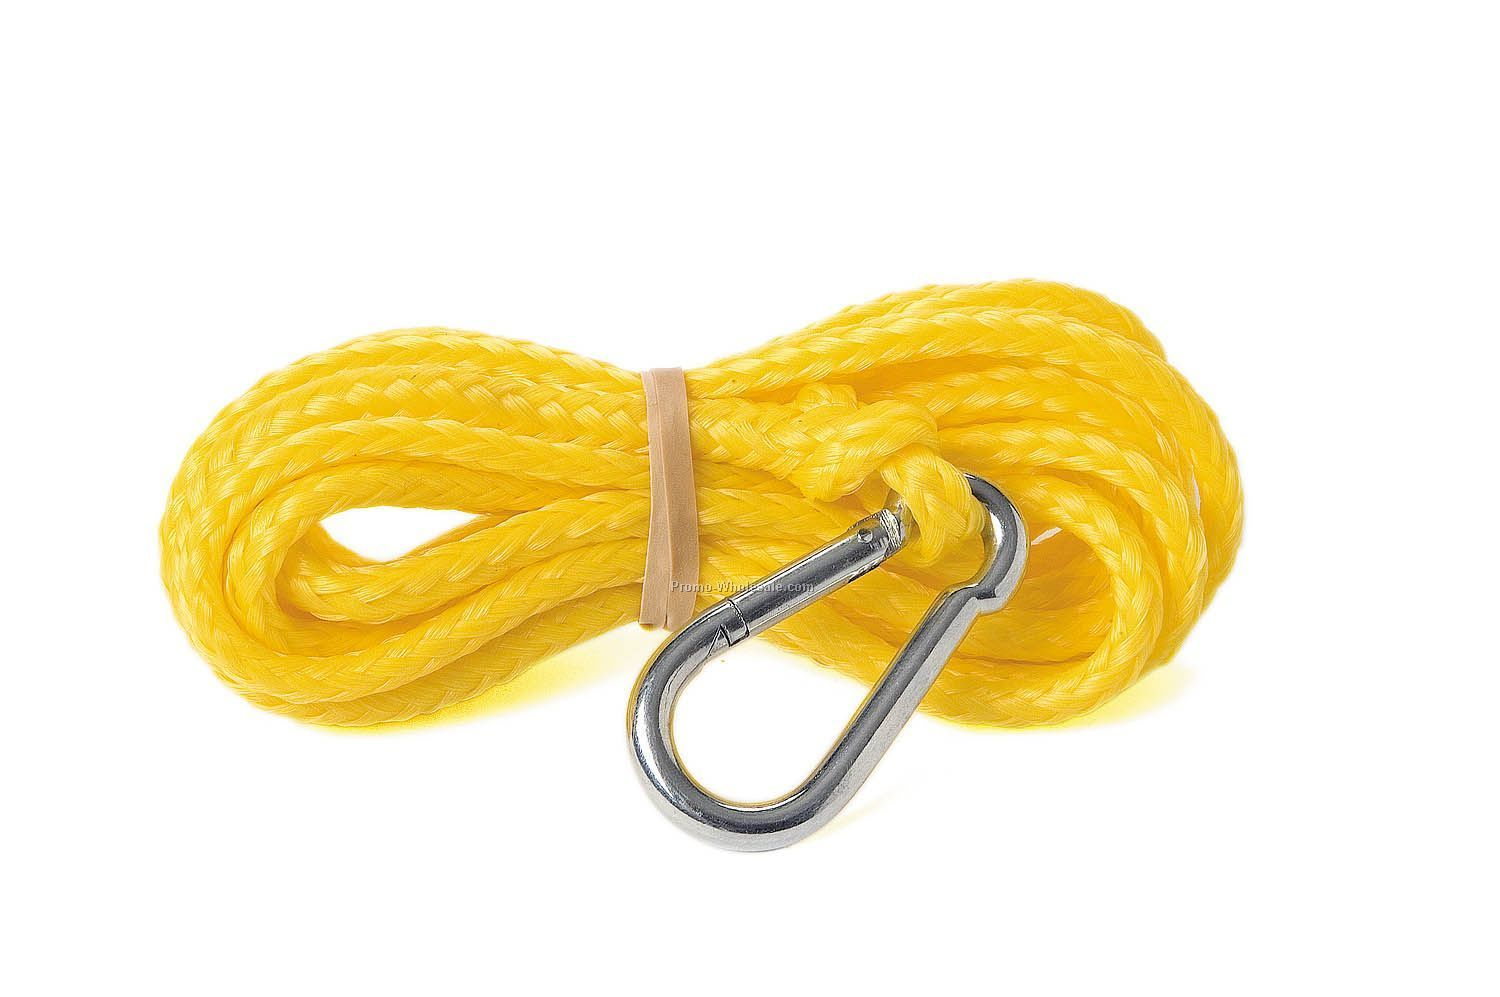 Rescue Rope (Blank)